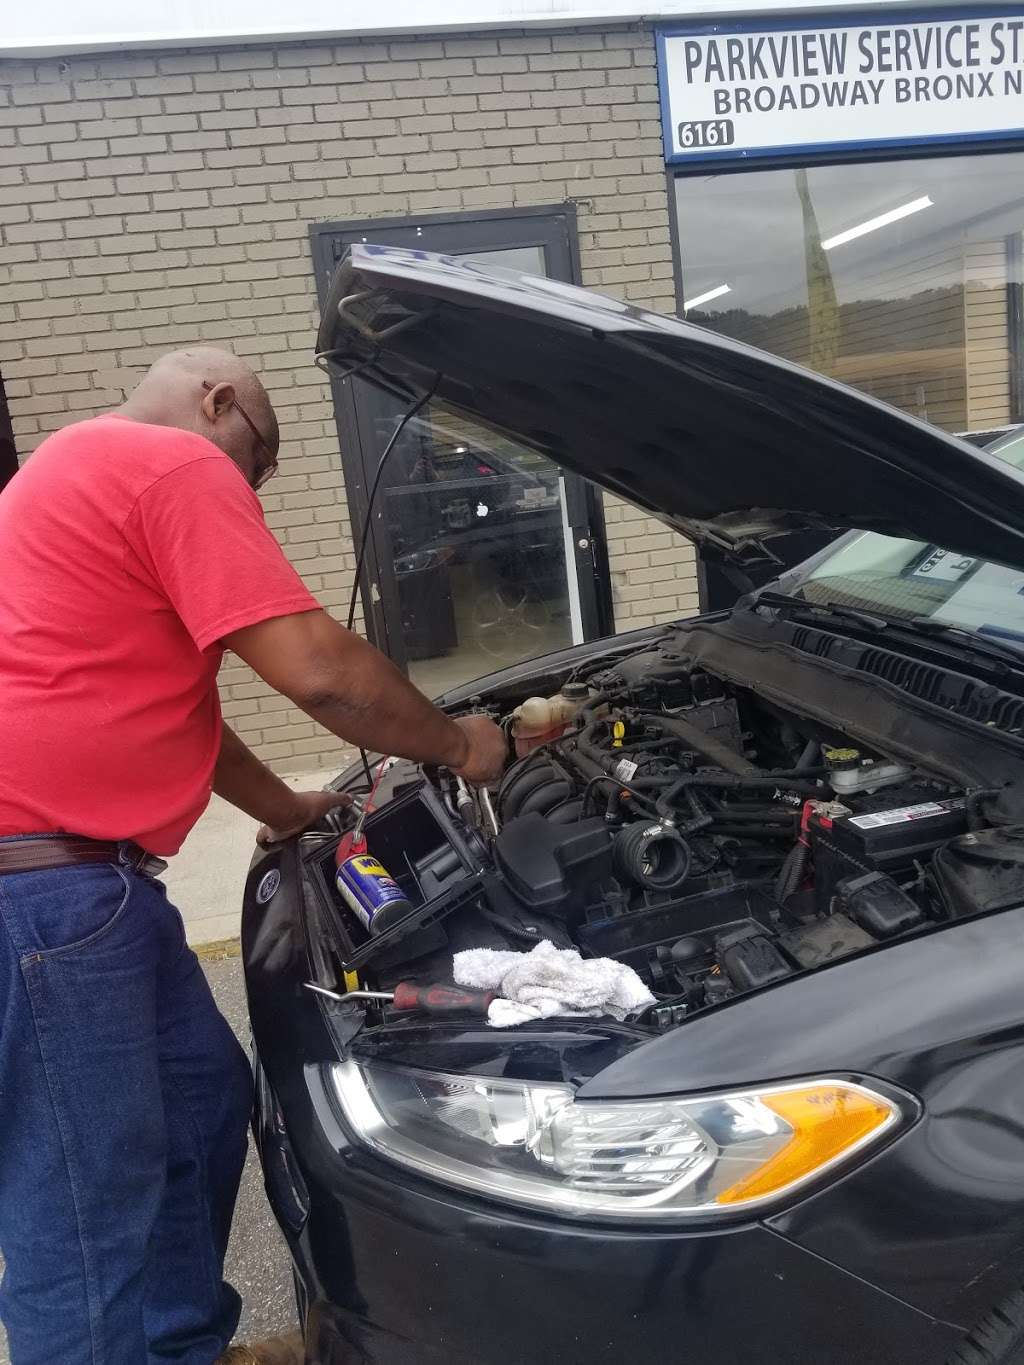 Parkview service center - car repair  | Photo 1 of 1 | Address: 6161 Broadway, Bronx, NY 10471, USA | Phone: (718) 884-0141